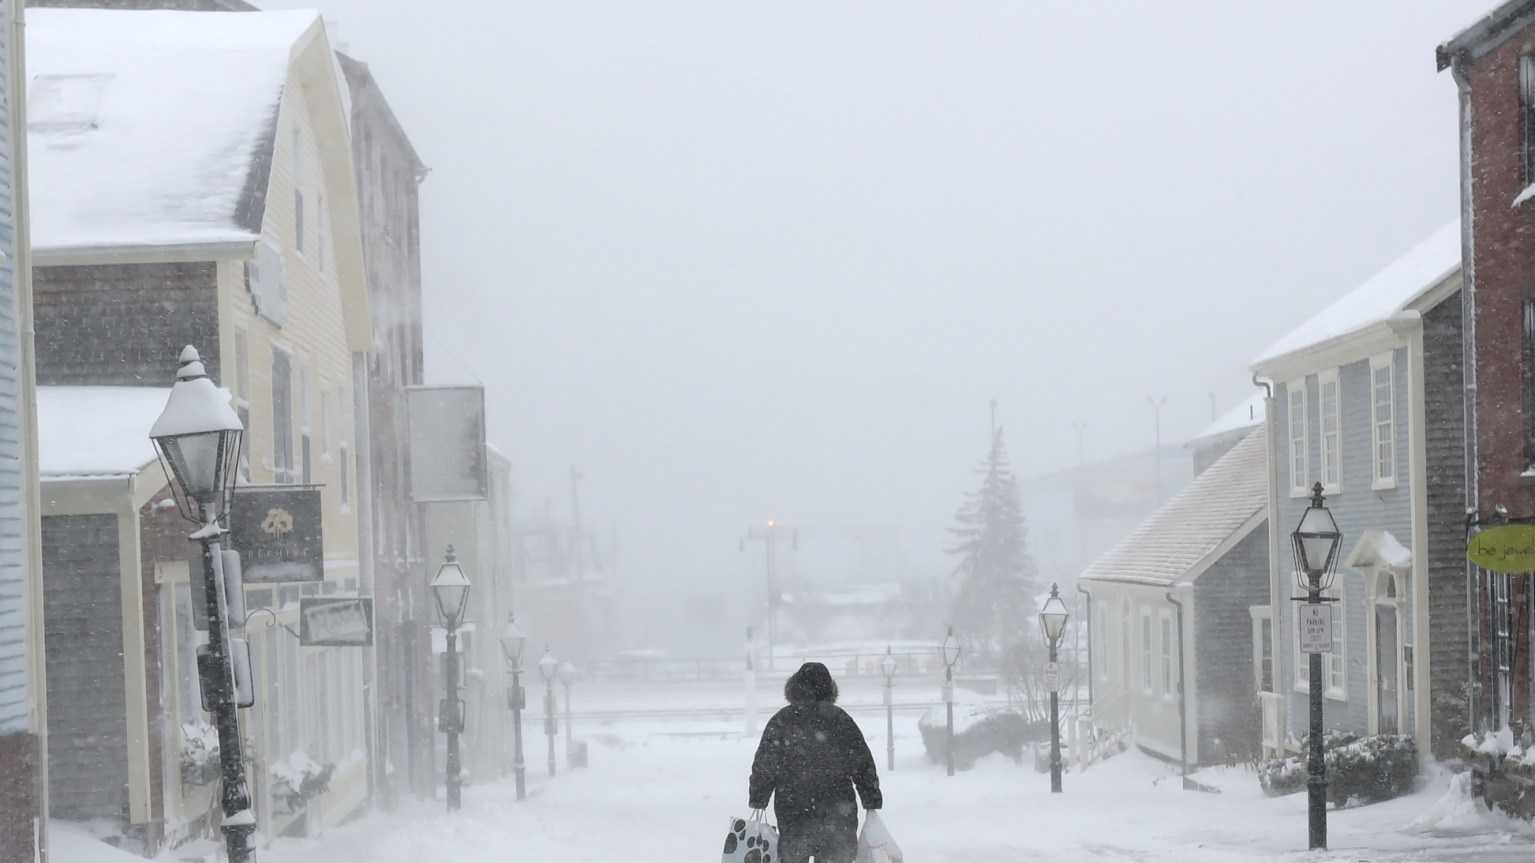 A woman walks down the street in New Bedford, Mass., on Monday, Feb. 8, 2016 during a snowstorm. The second winter storm in four days to hit the Northeast is expected to bring blizzard conditions to Cape Cod and southeastern Massachusetts and leave behind as much as 18 inches of snow.